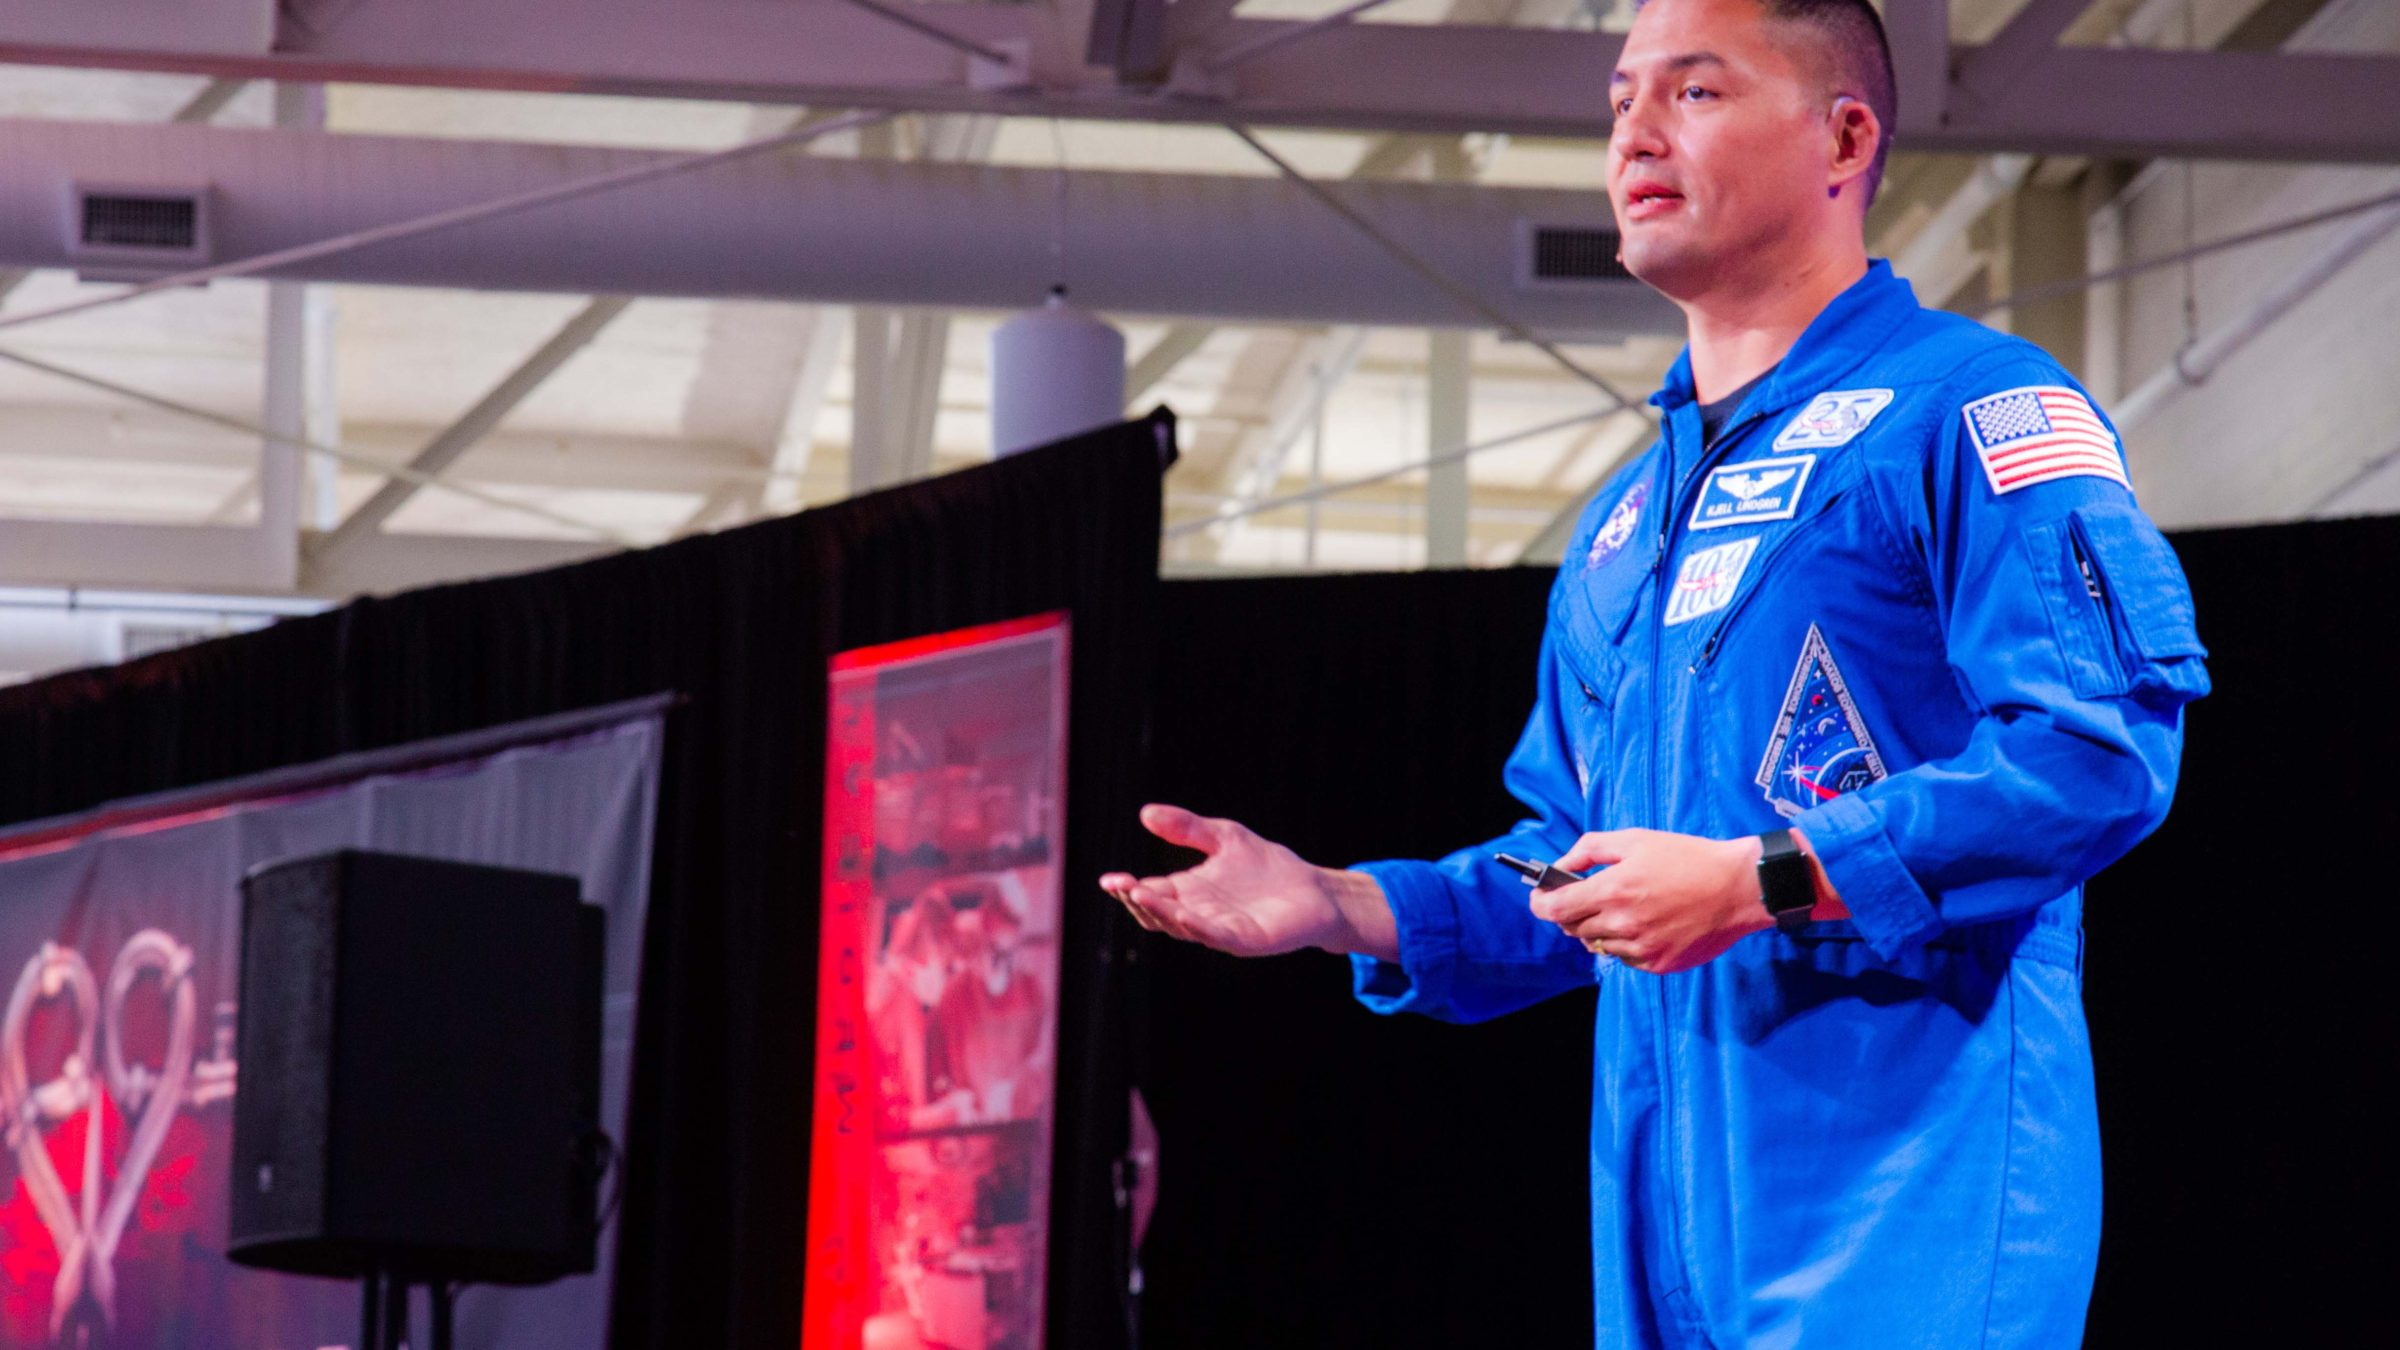 Astronaut and cardiovascular physiologist Kjell Lindgren, MD, speaks at P&P11.